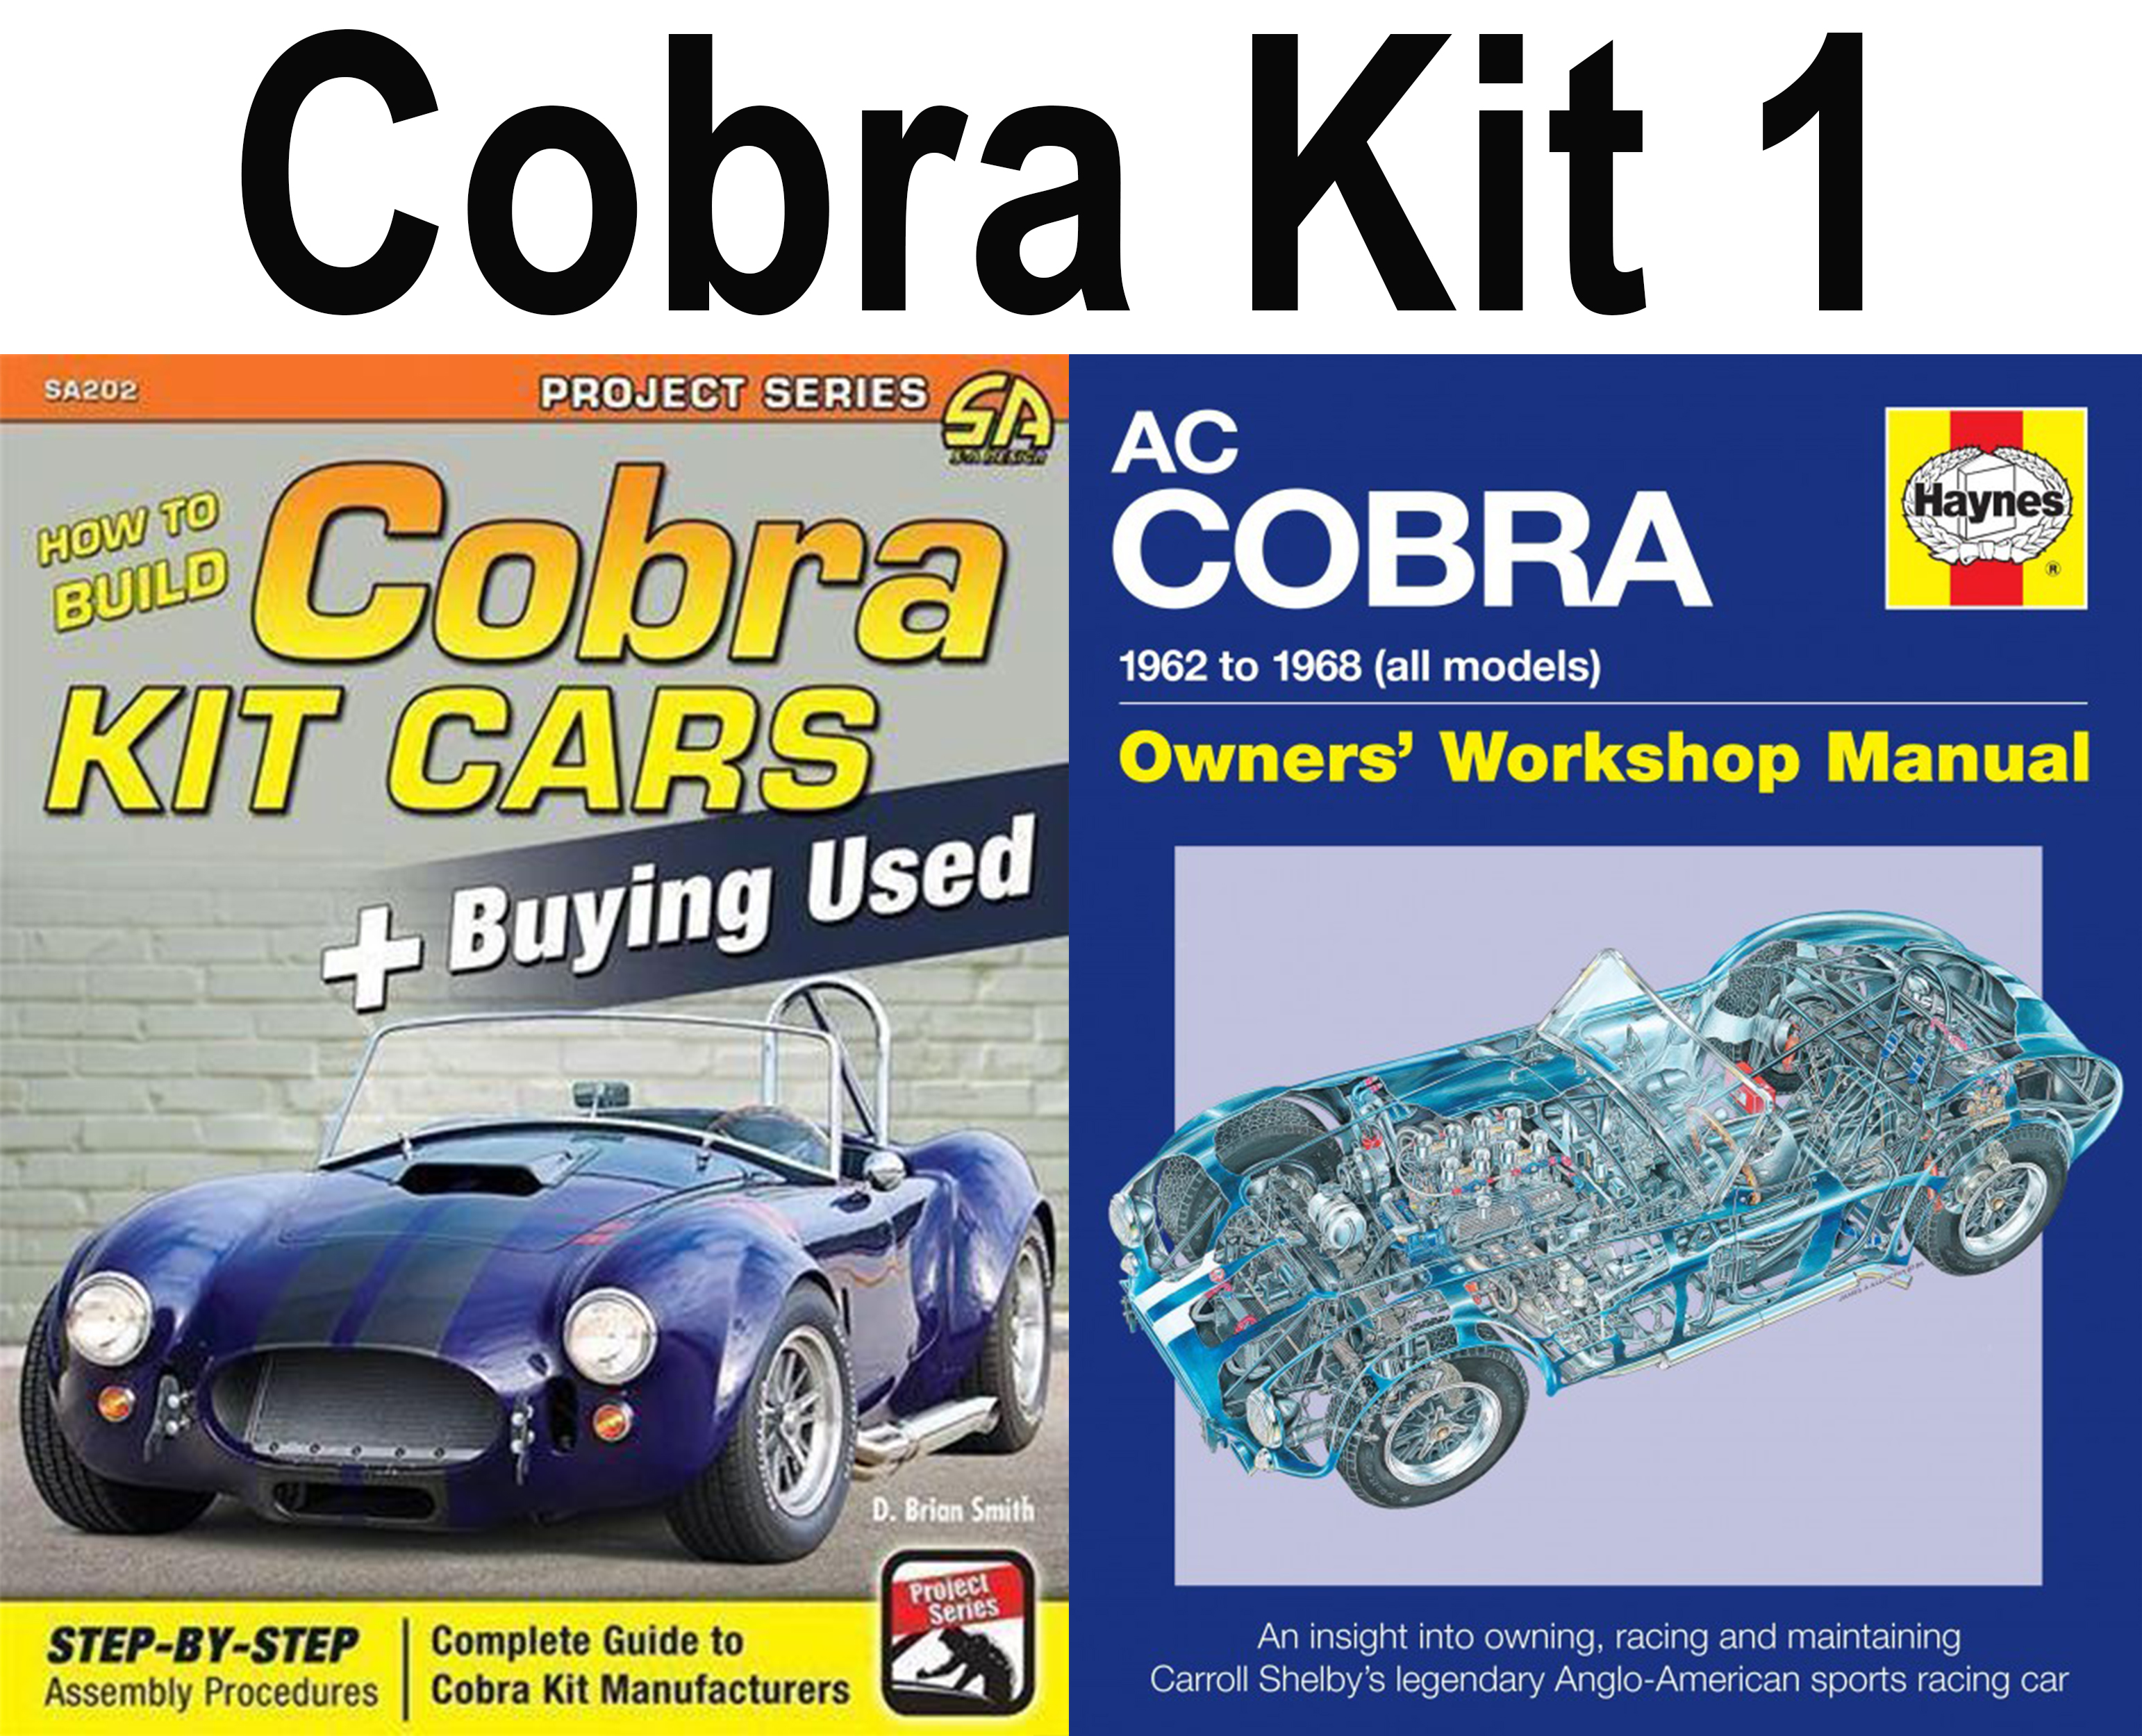 Details about Shelby Cobra Ac 1962-1968 Kit Car 2 Book Set Workshop Manual  How To Build